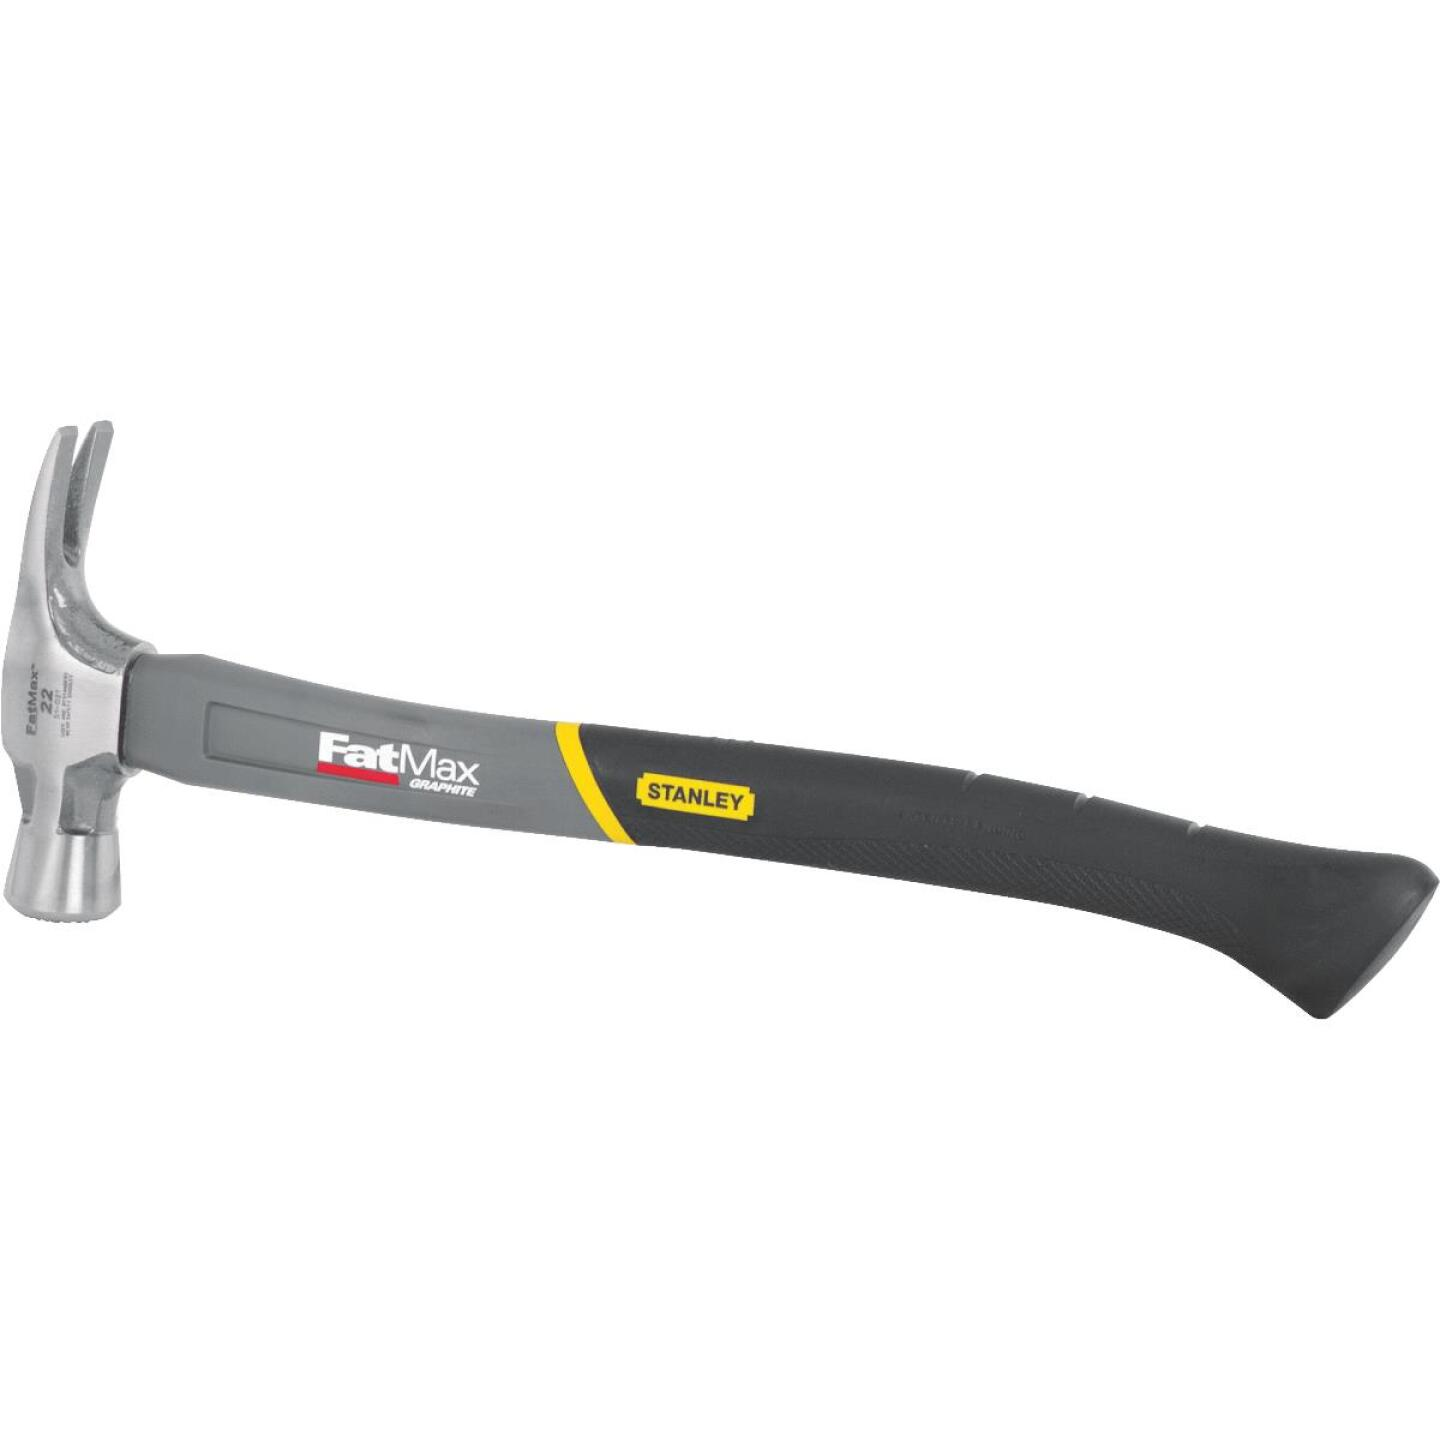 Stanley FatMax 22 Oz. Milled-Face Framing Hammer with Graphite Axe Handle Image 2